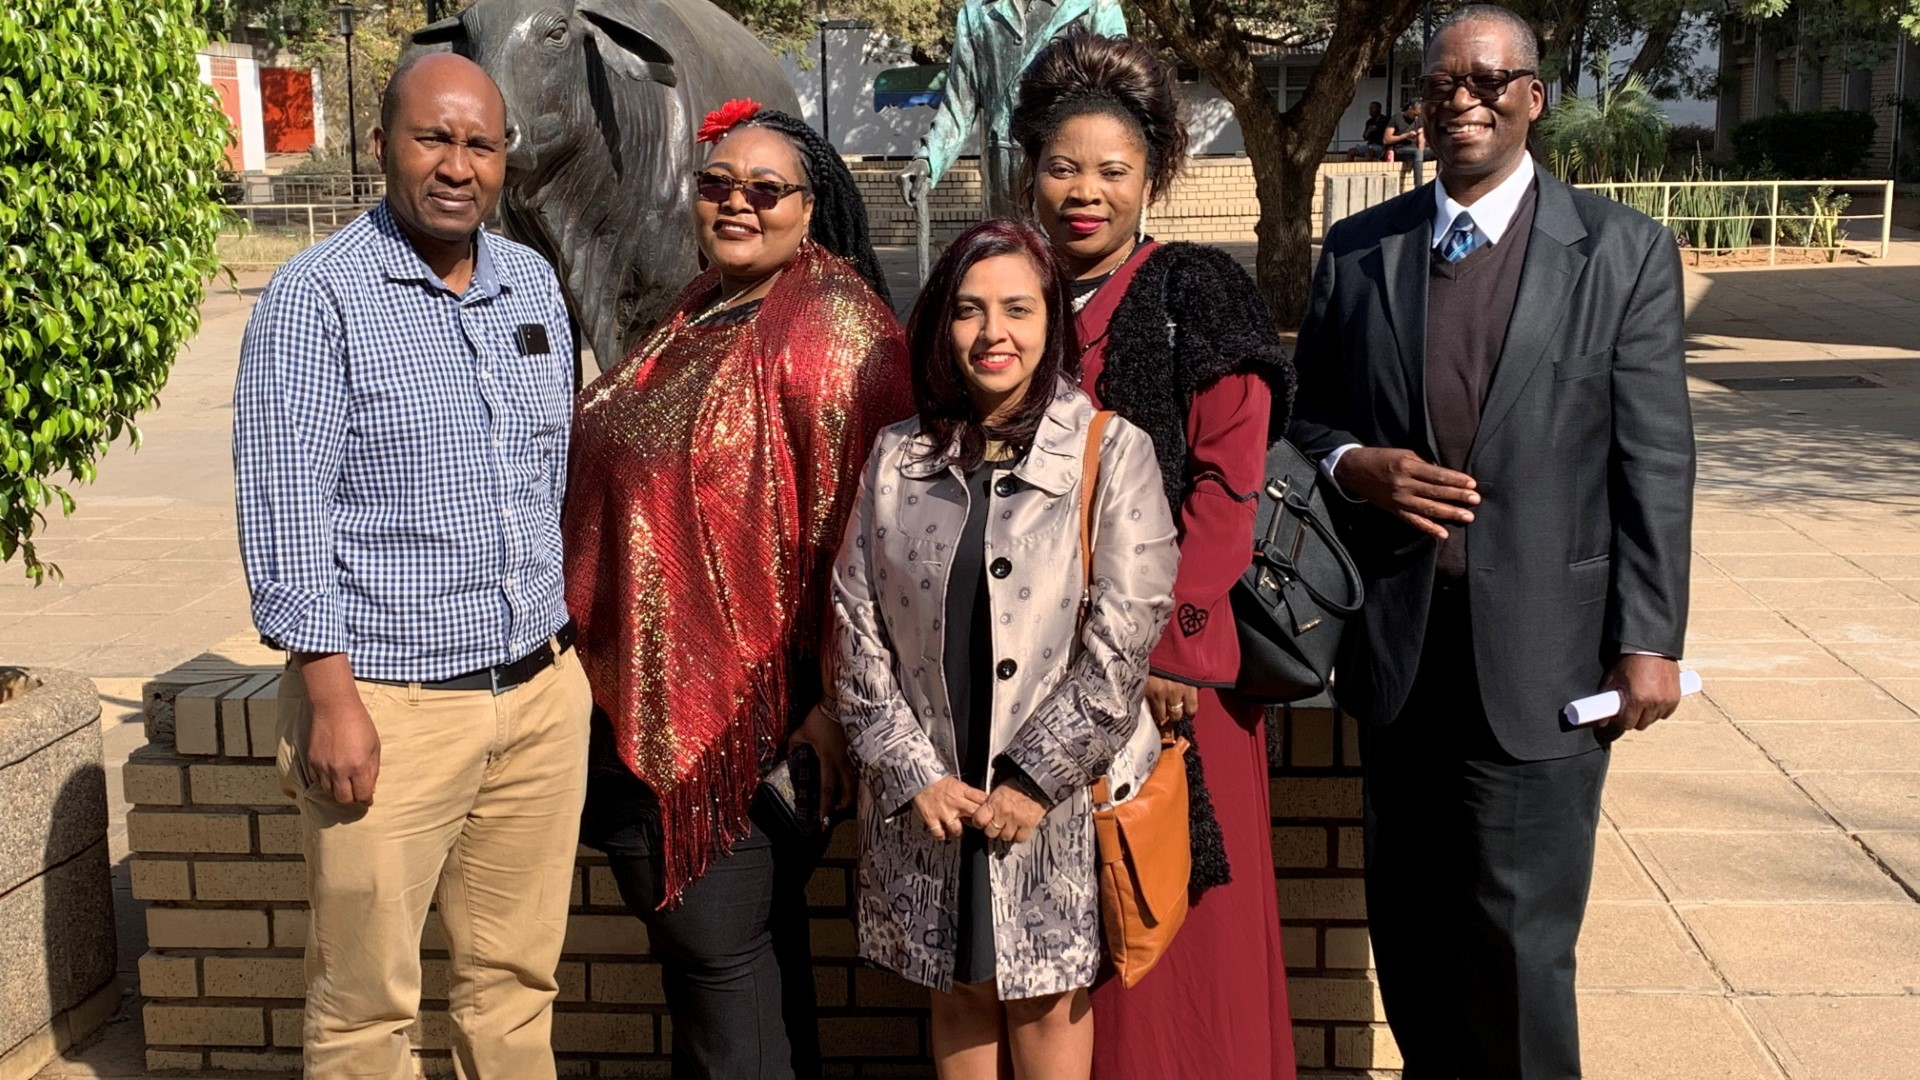 At the University of Botswana are academics (from left) Mr Sifiso Zulu, Dr Christina Kgari-Masondo, Professor Maheshvari Naidu, Professor Vivian Ojong, and Professor Andy Chebanne.